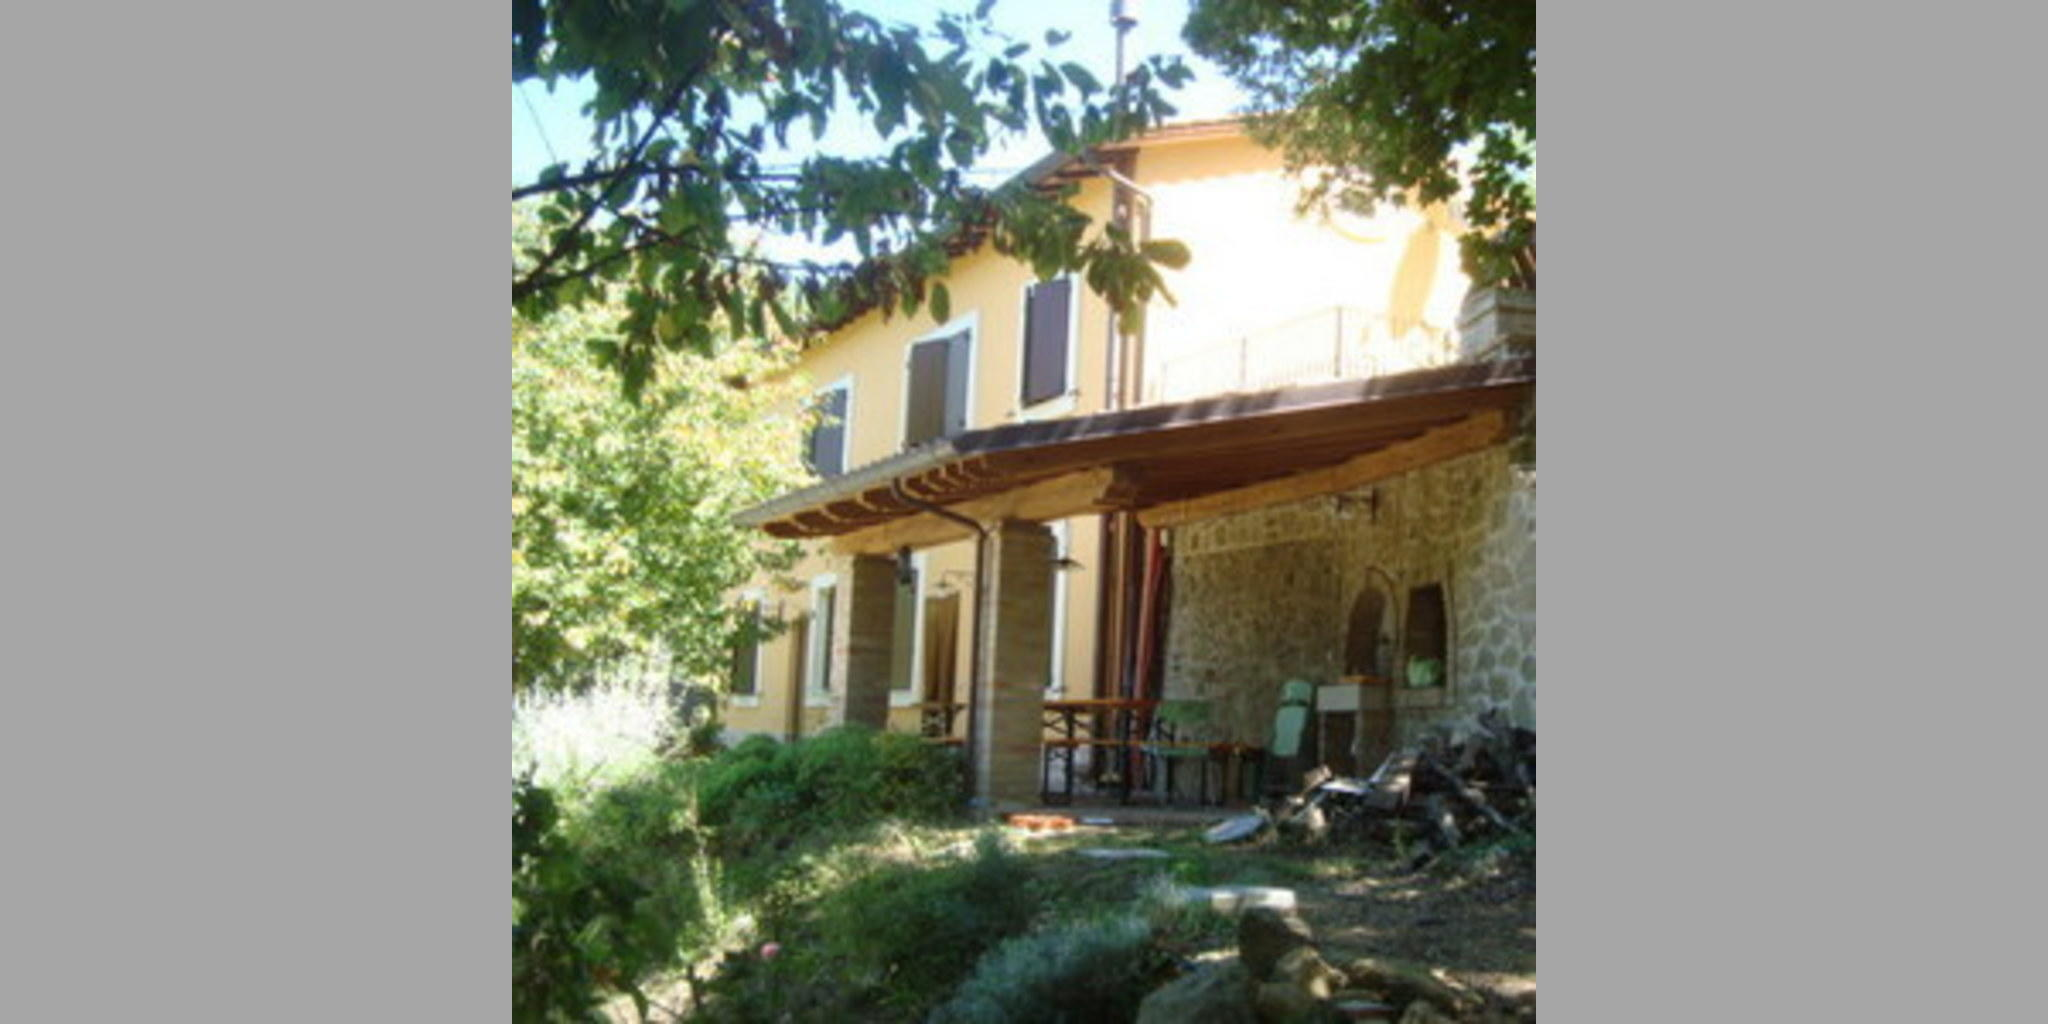 Farmhouse Bettona - Bettona_San Bernardino